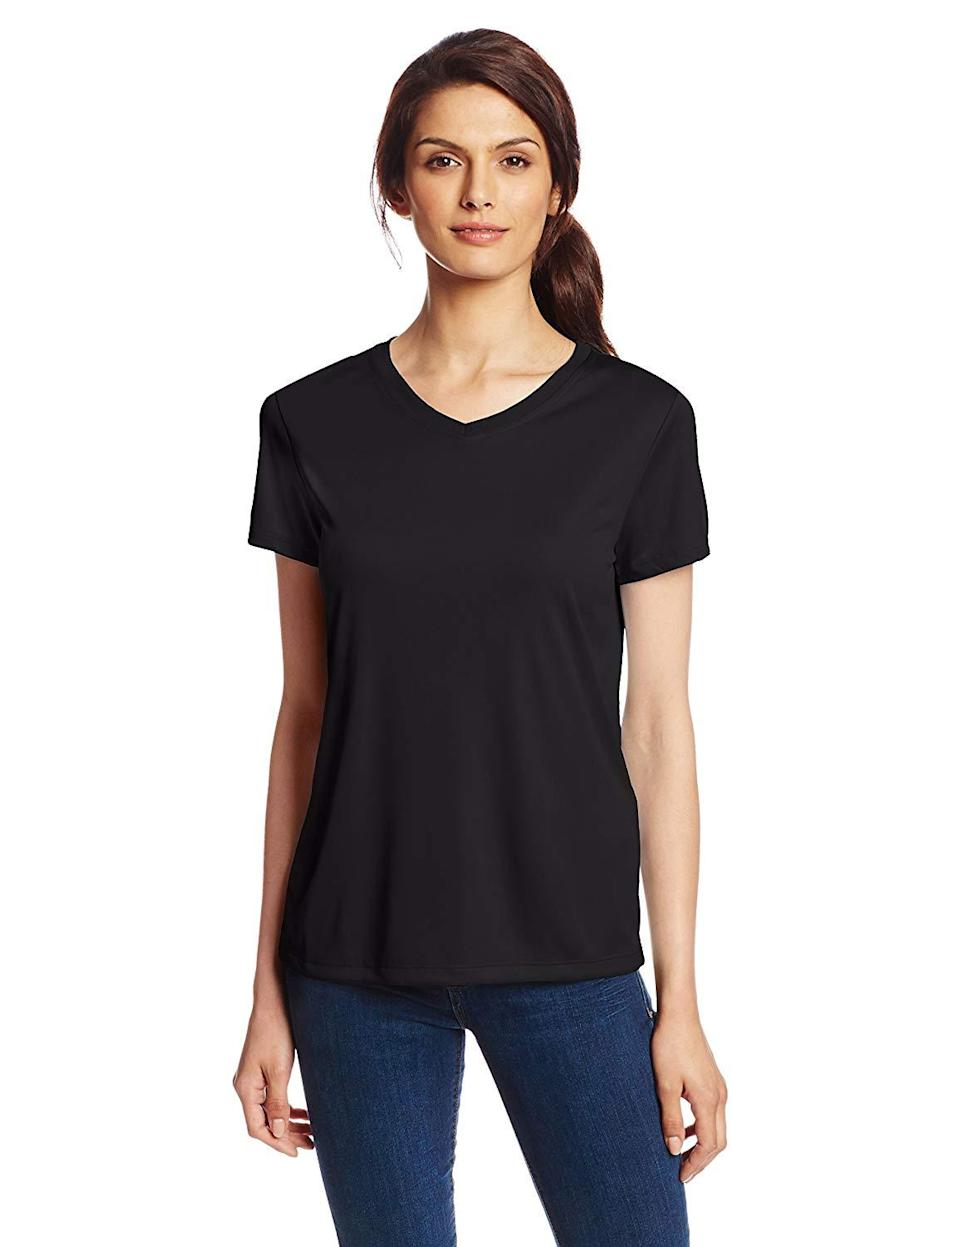 """<strong>The Performance Tee</strong><br><br>Hanes is a poster child for the perfect basic T-shirt, including this popular performance tee you can layer or wear as is in extreme heat without having to worry about excess sweat.<br><br><strong>The Hype:</strong> 4 out of 5 stars on Amazon<br><br><strong>What They're Saying:</strong> """"I LOVE this shirt. This shirt keeps me cooler than any other shirt I own. It seems to dry almost as quickly as I sweat. I put this shirt through extremes, 90 degree weather with 70-80% humidity."""" - Heather A., Amazon Review<br><br><strong>Hanes</strong> Hanes Sport Women's Cool DRI Performance V-Neck Tee, $, available at <a href=""""https://www.amazon.com/Hanes-Womens-Performance-V-Neck-Medium/dp/B00KRYOP8M"""" rel=""""nofollow noopener"""" target=""""_blank"""" data-ylk=""""slk:Amazon"""" class=""""link rapid-noclick-resp"""">Amazon</a>"""